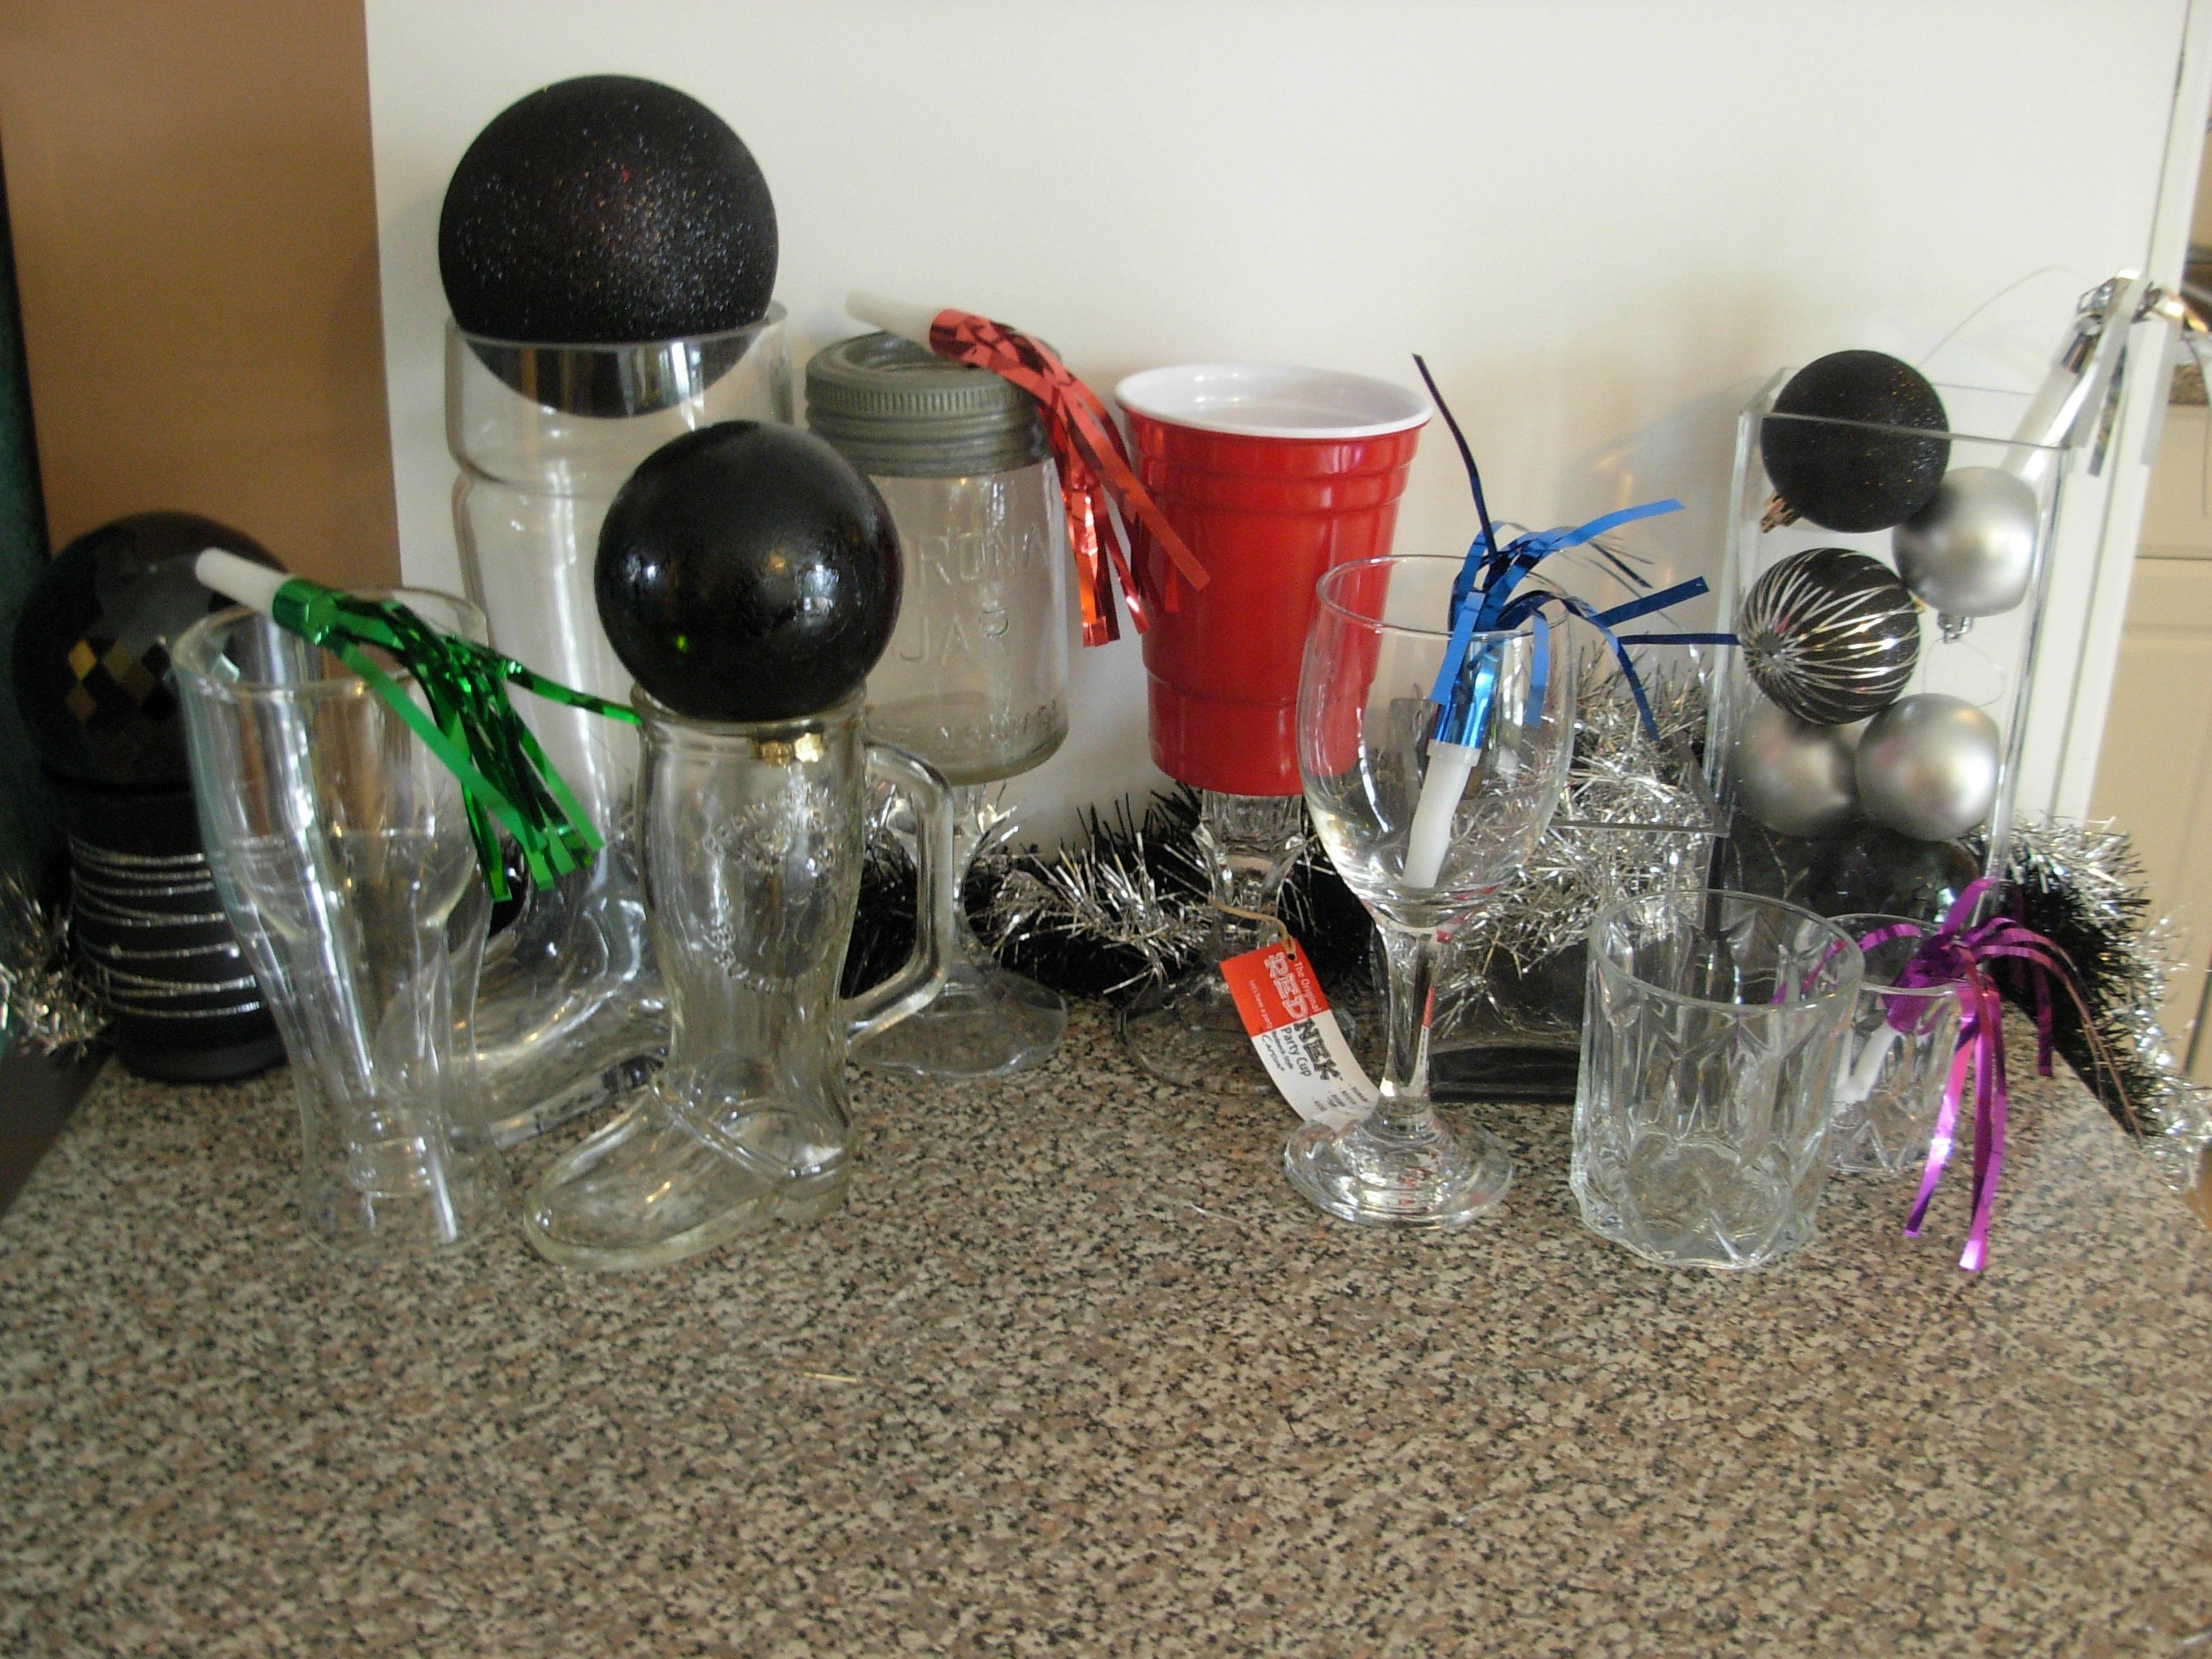 Choose Your Weapon #nye  The Hopside Beer Glass, the Big Boot, the Little Boot, the Carona Jar, the RedNeck, the Crown Royal, or the Stemmed Wine Glass